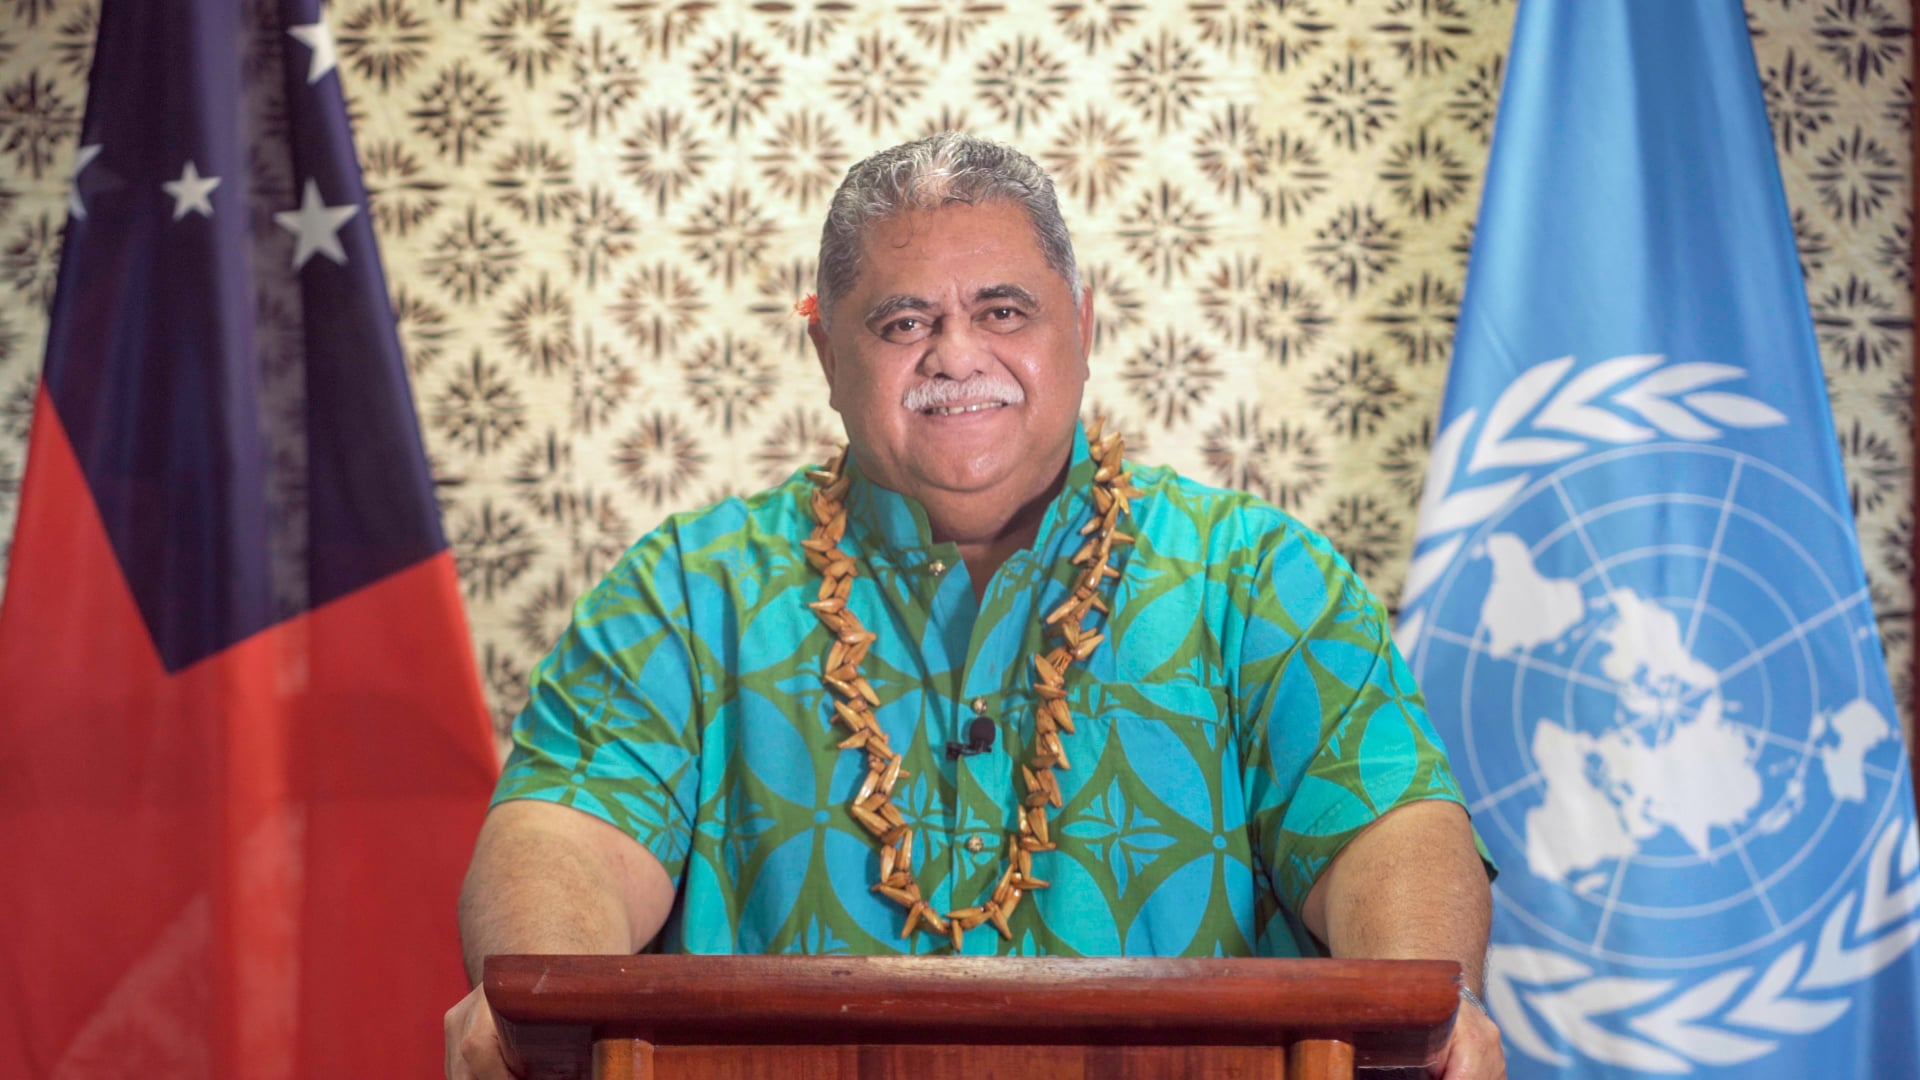 Hon. Minister of Agriculture and Fisheries address UN Food Systems Summit 2021